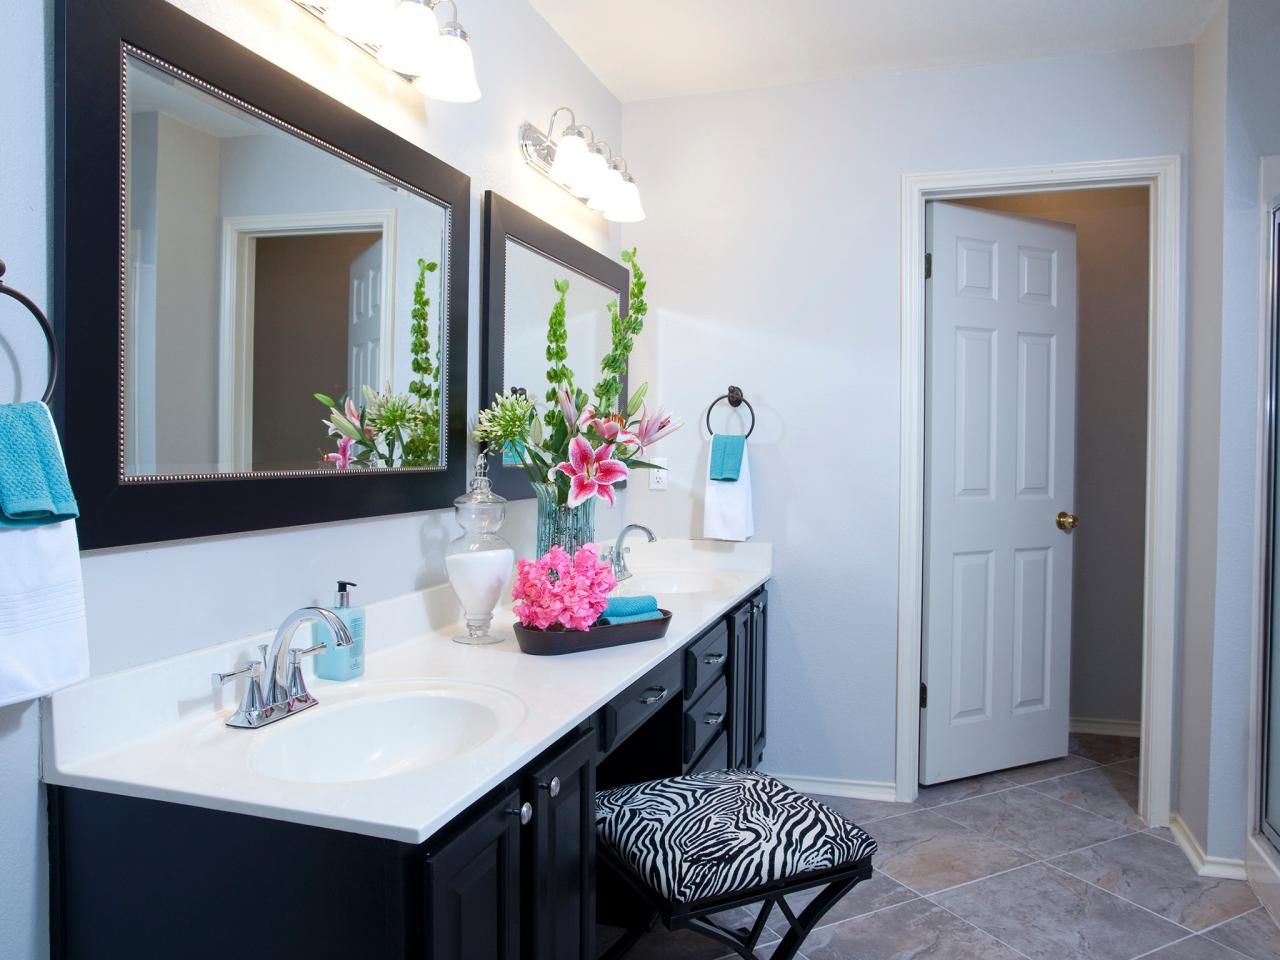 Double Sink Vanity With Chair In Between For Getting Ready